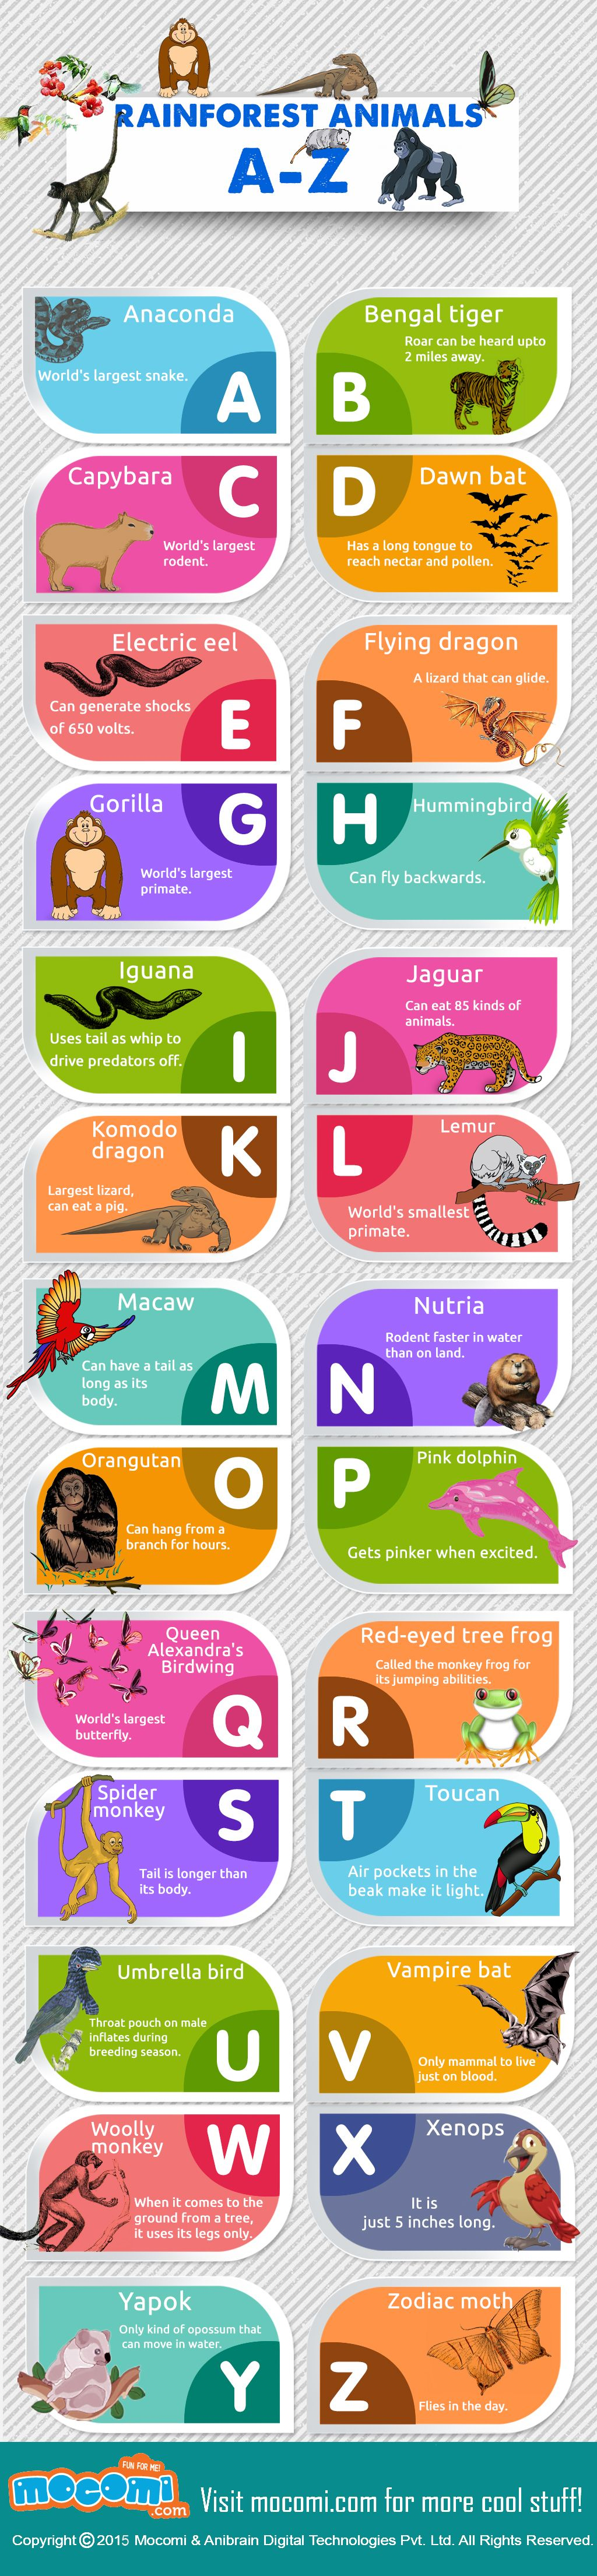 19 must know rainforest facts for kids kids reading rain and